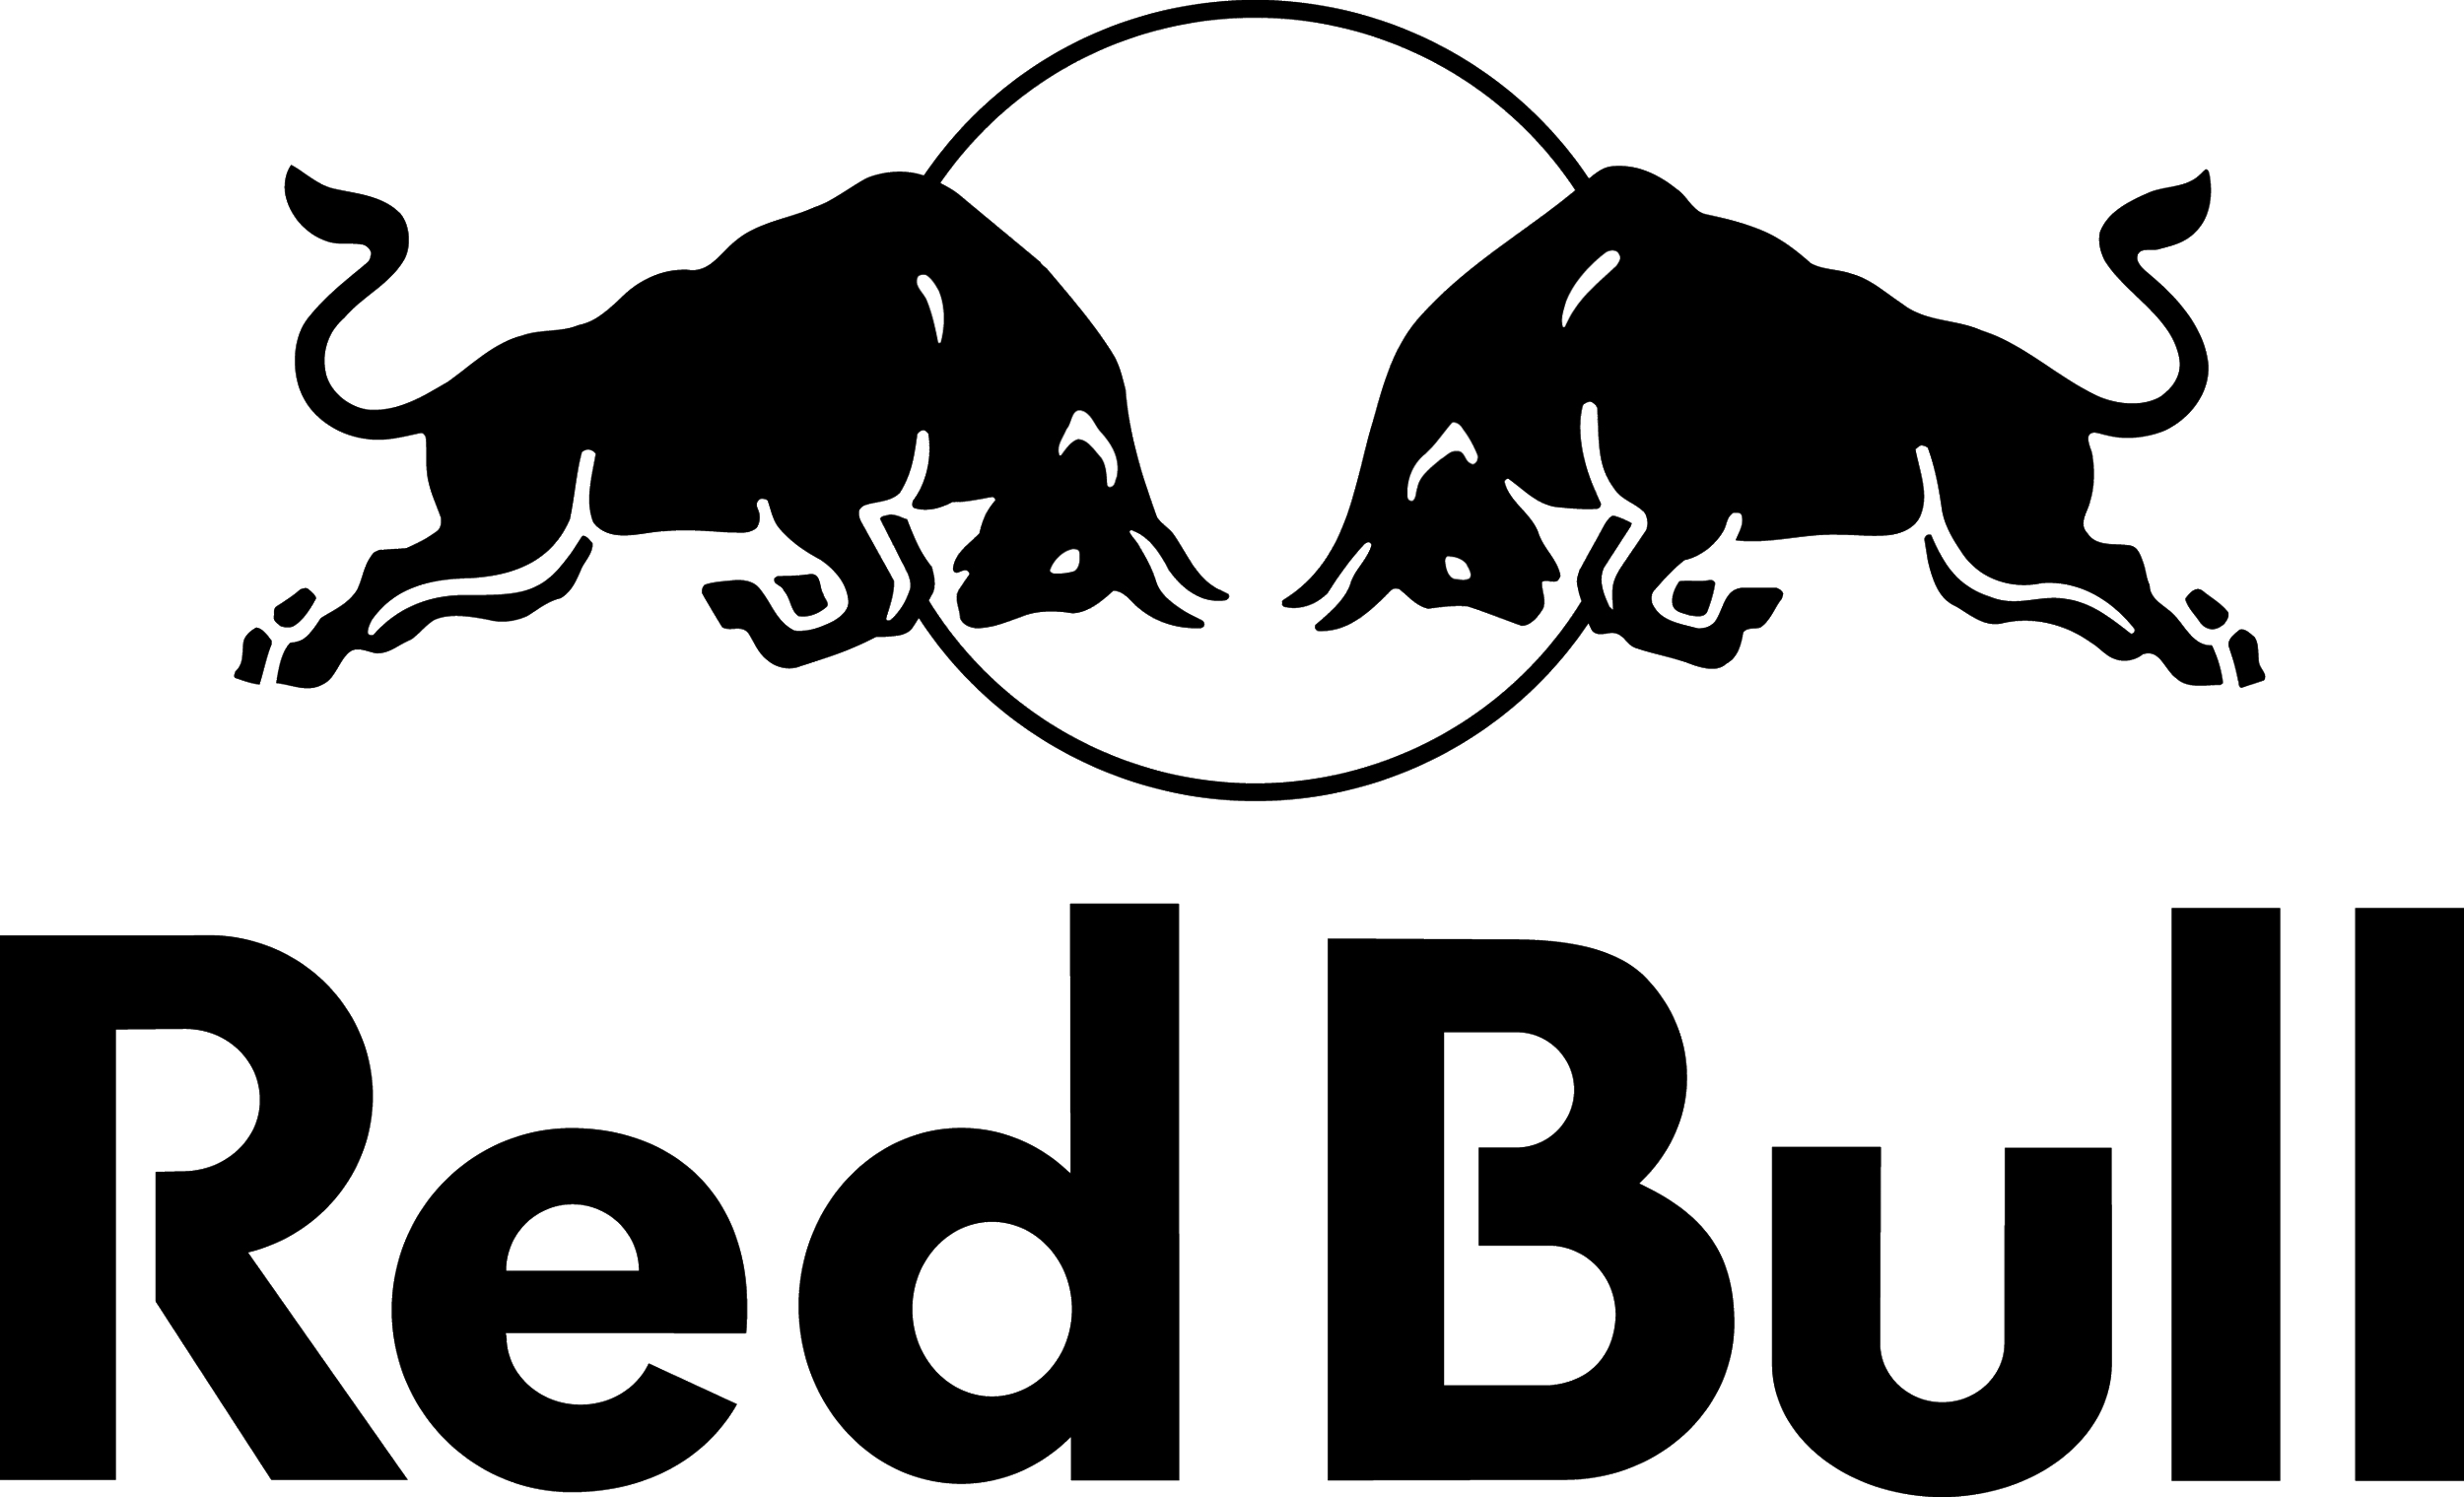 RED_BULL_STD_LOGO_BW.png